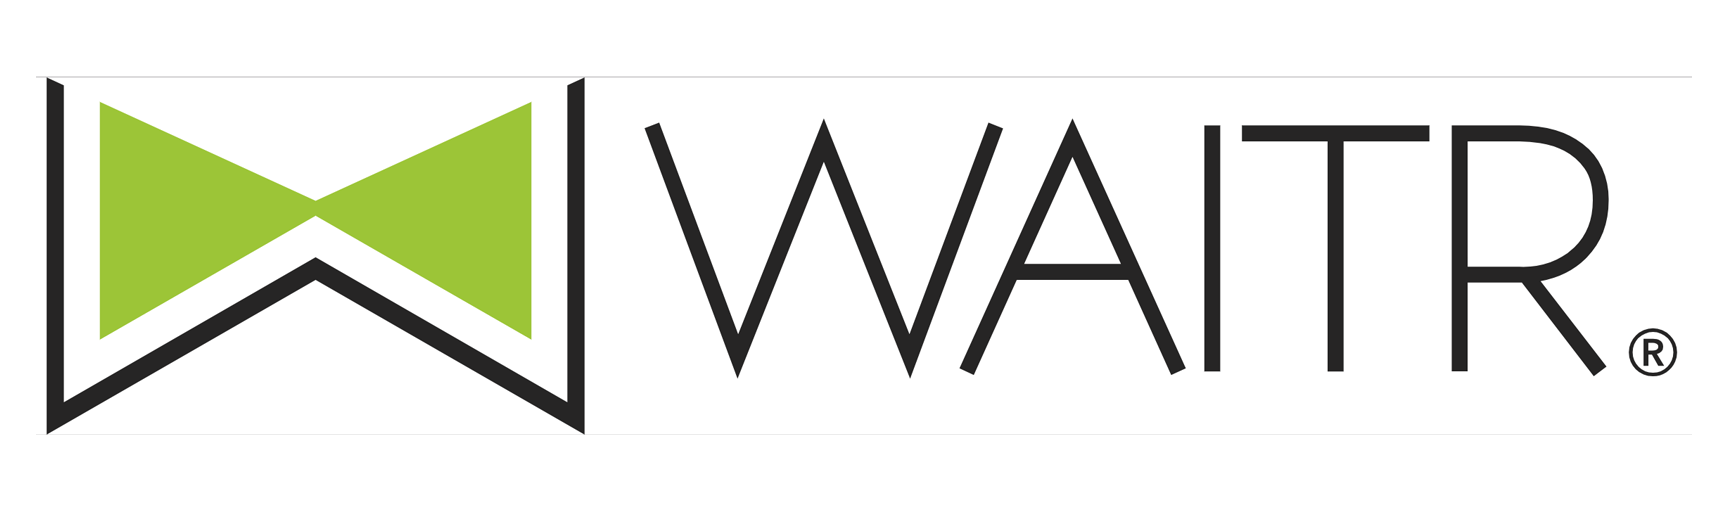 Waitr Help Center home page